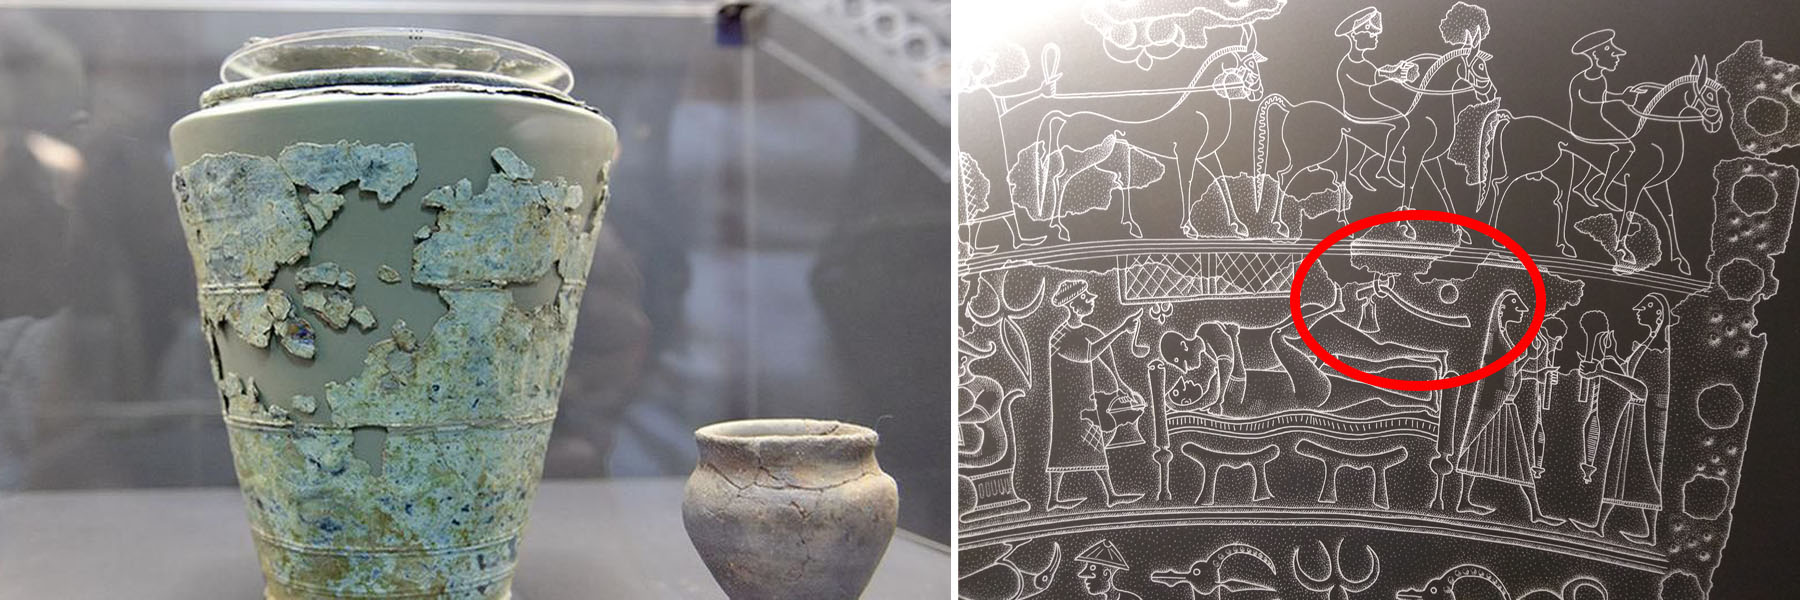 On the left the Situla (photo from La Tribuna di Treviso*), while on the right the representation of the axe in the Situla